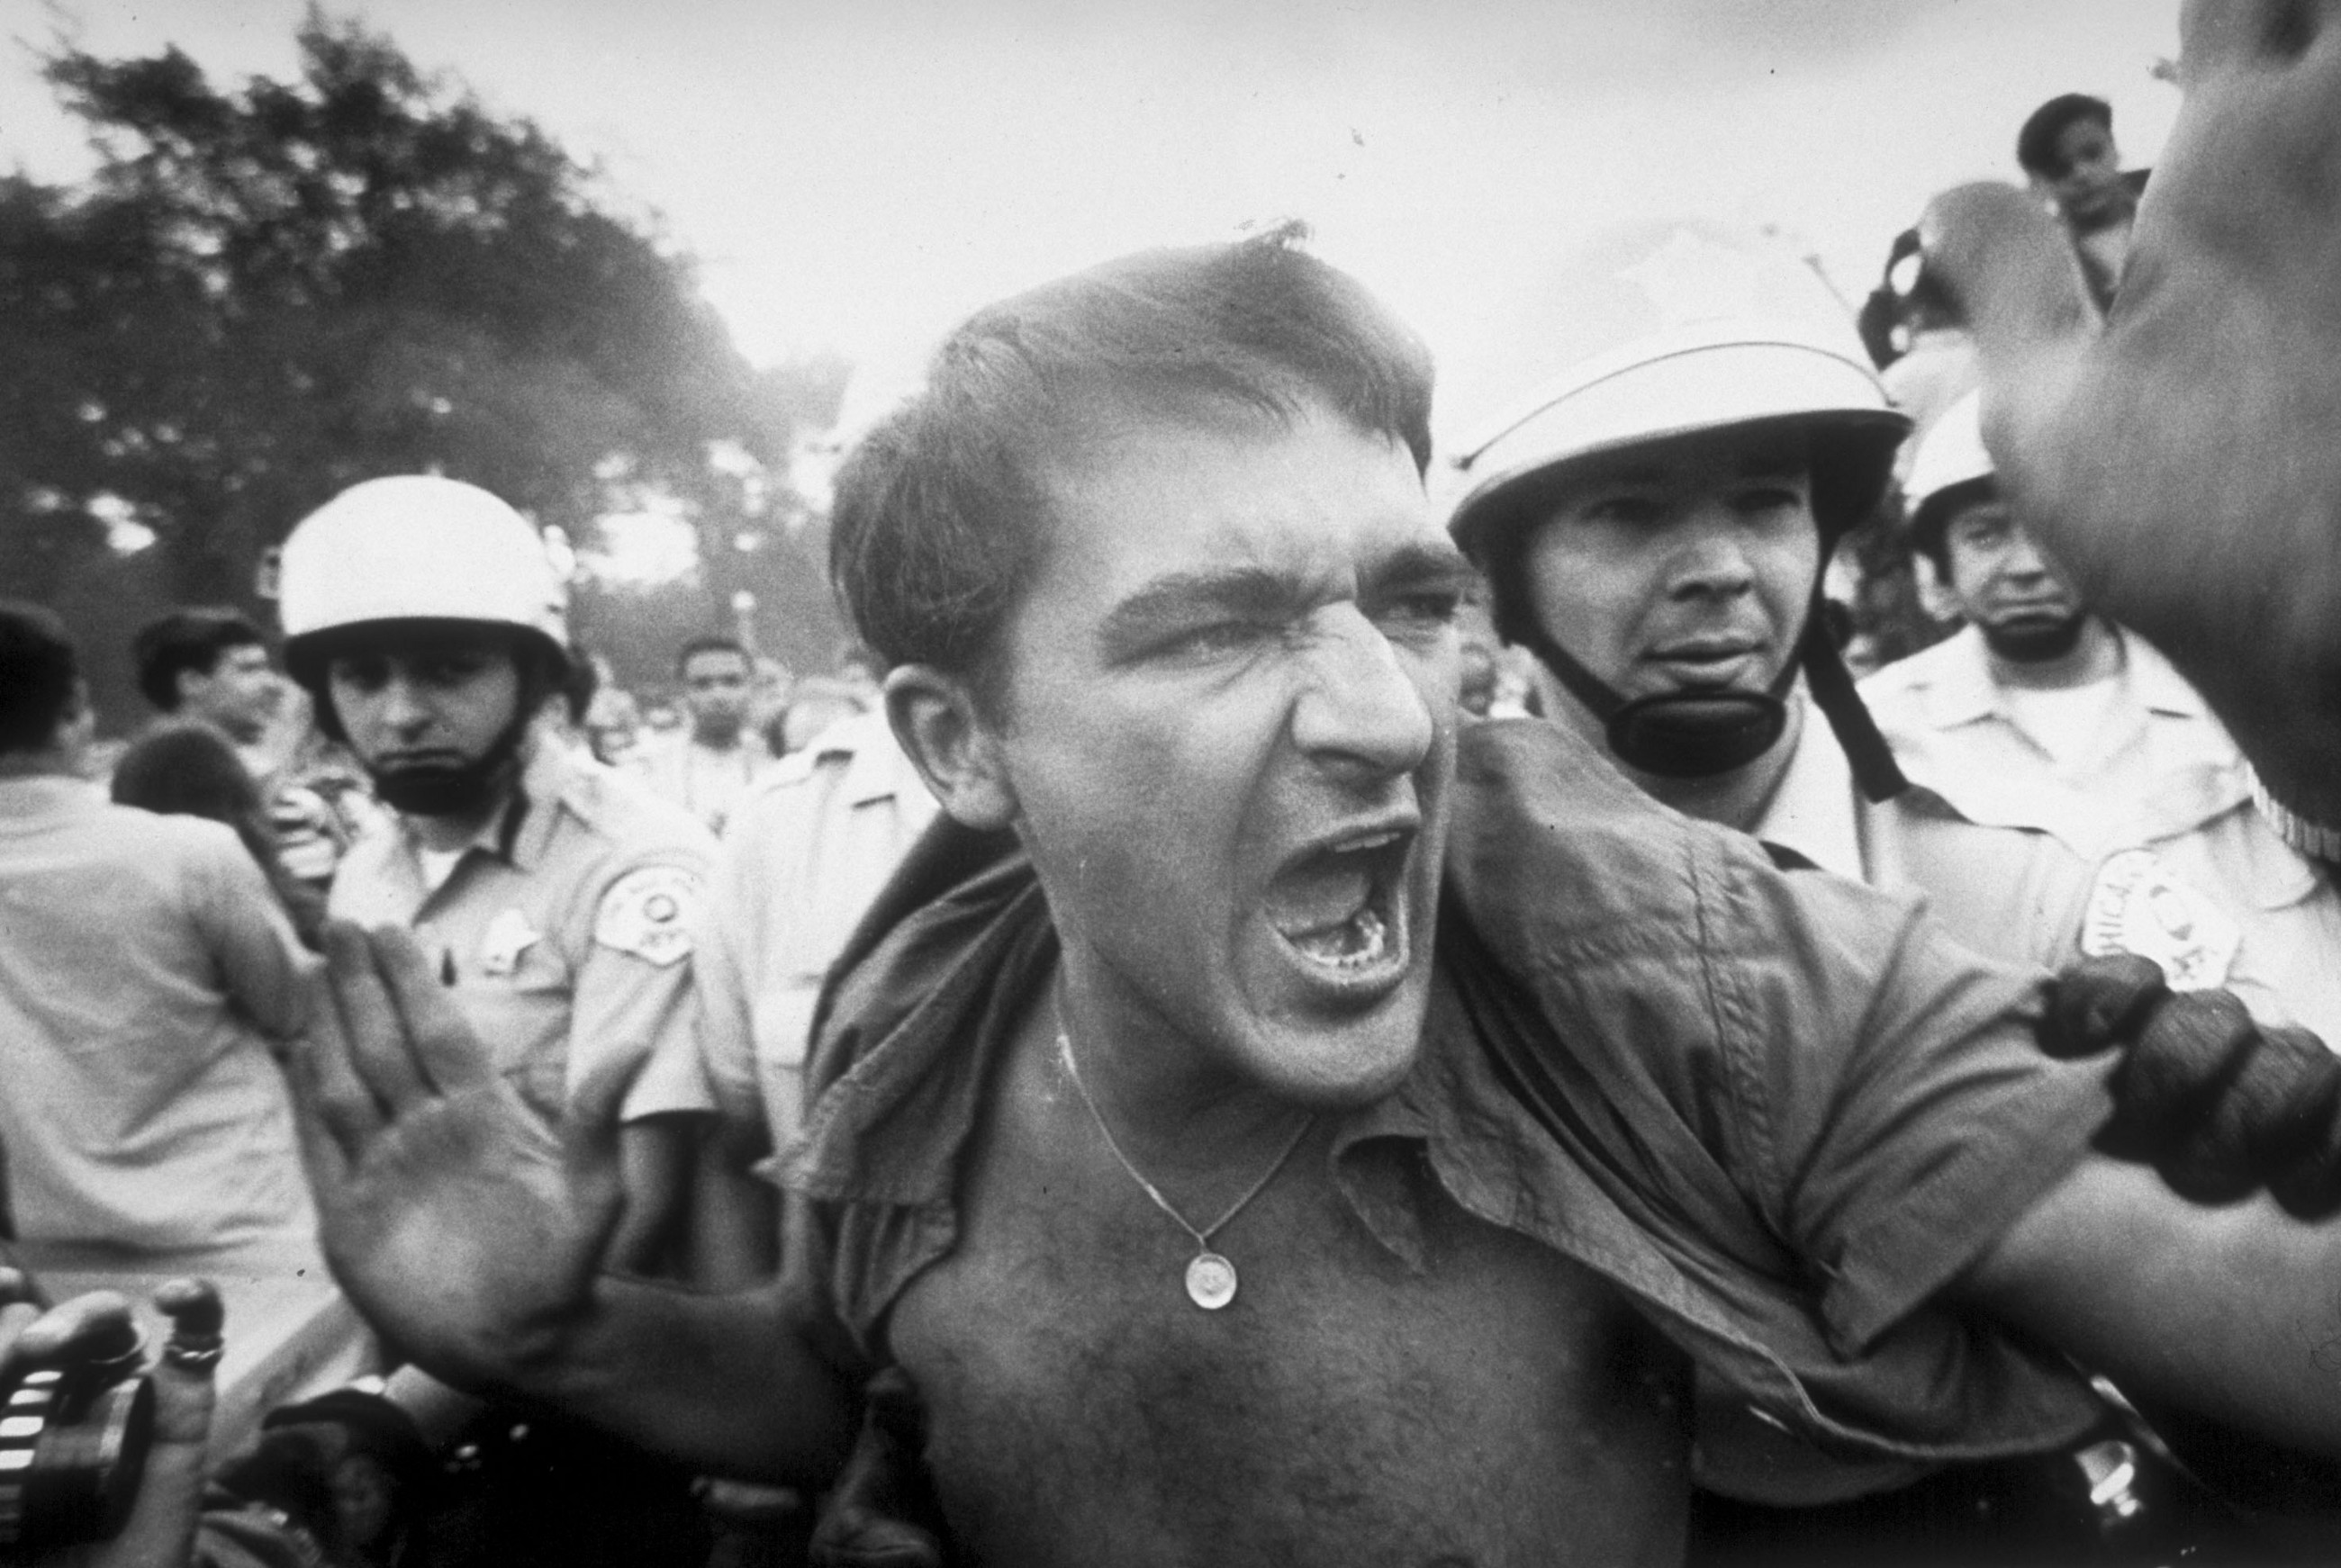 When the resistance confronted Democrats in 1968, the crackdown was vicious